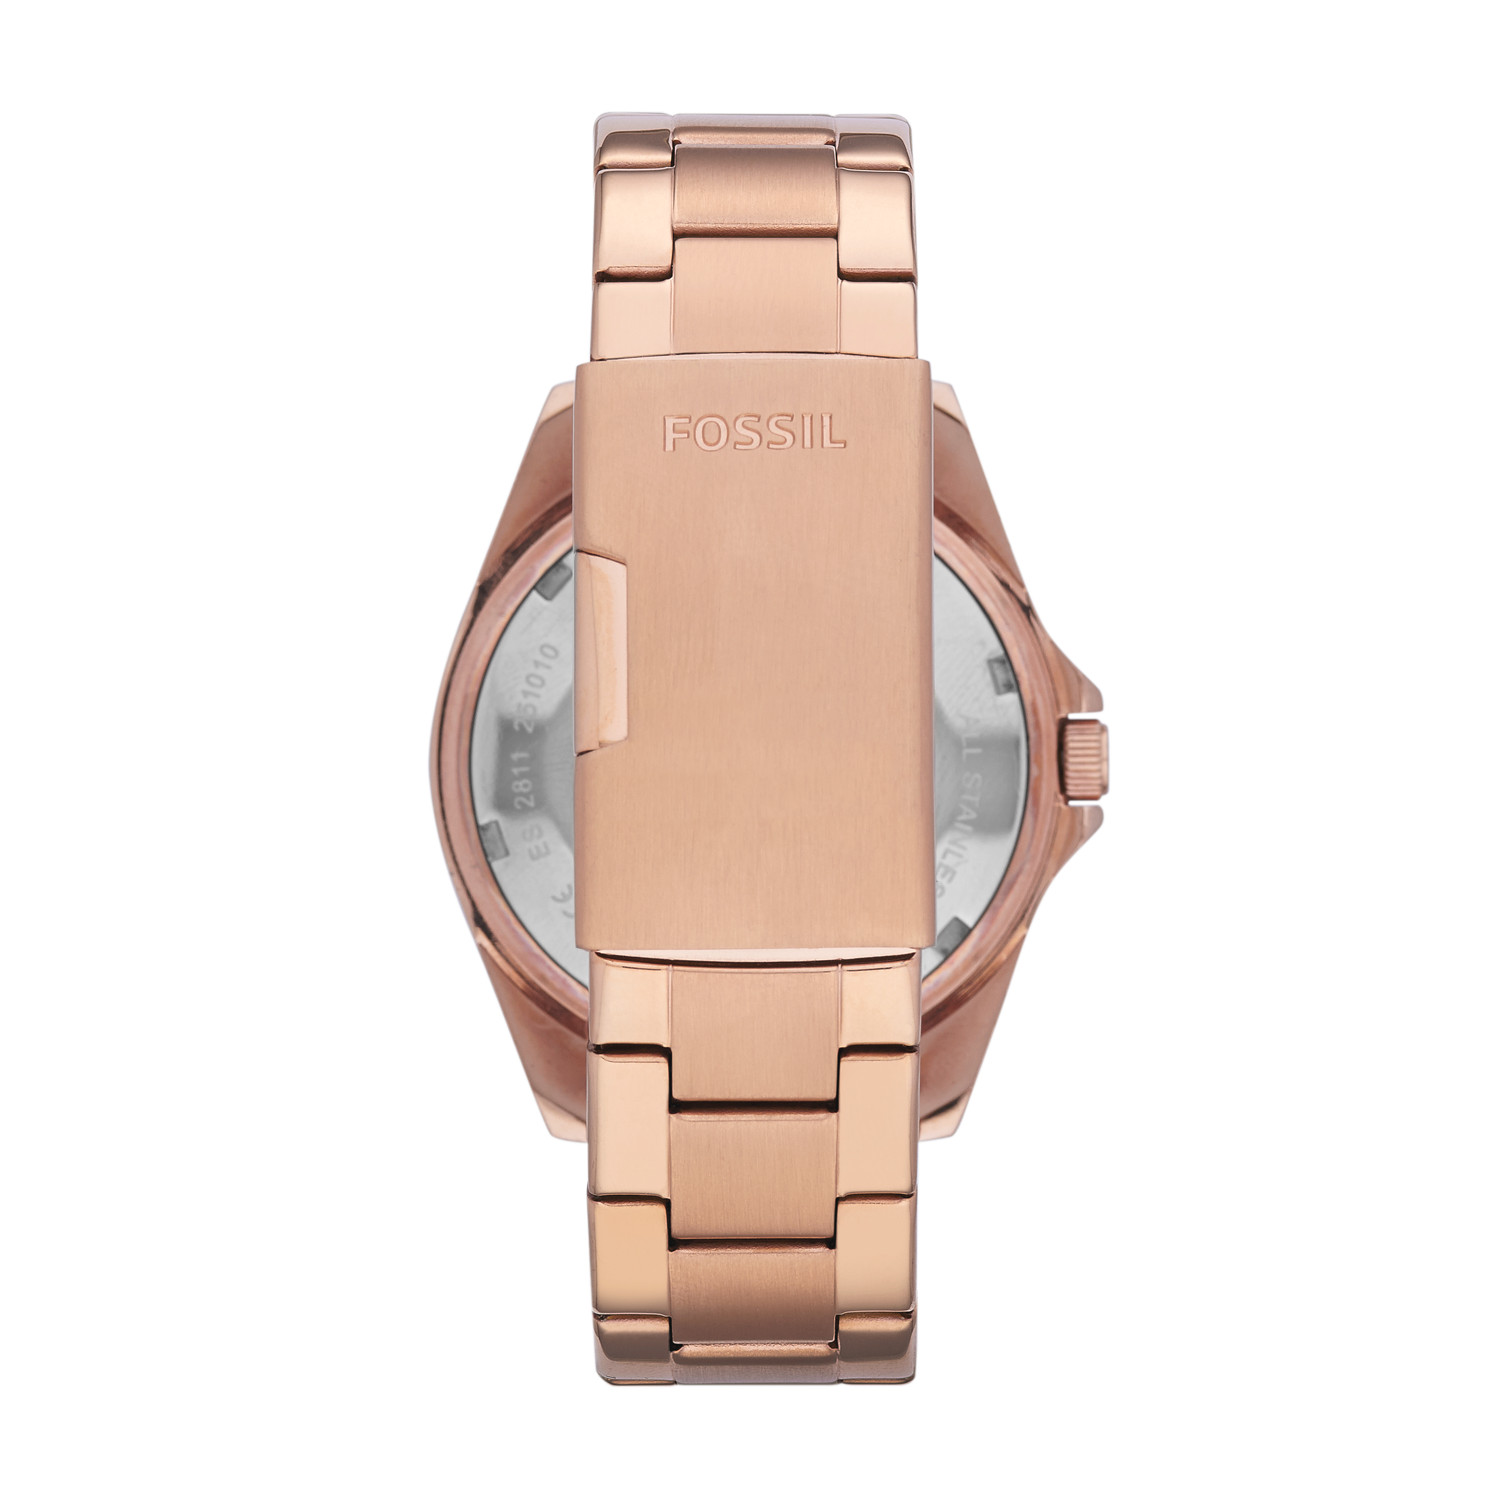 4b4e4d876ec5 Riley Multifunction Rose-Tone Stainless Steel Watch - Fossil